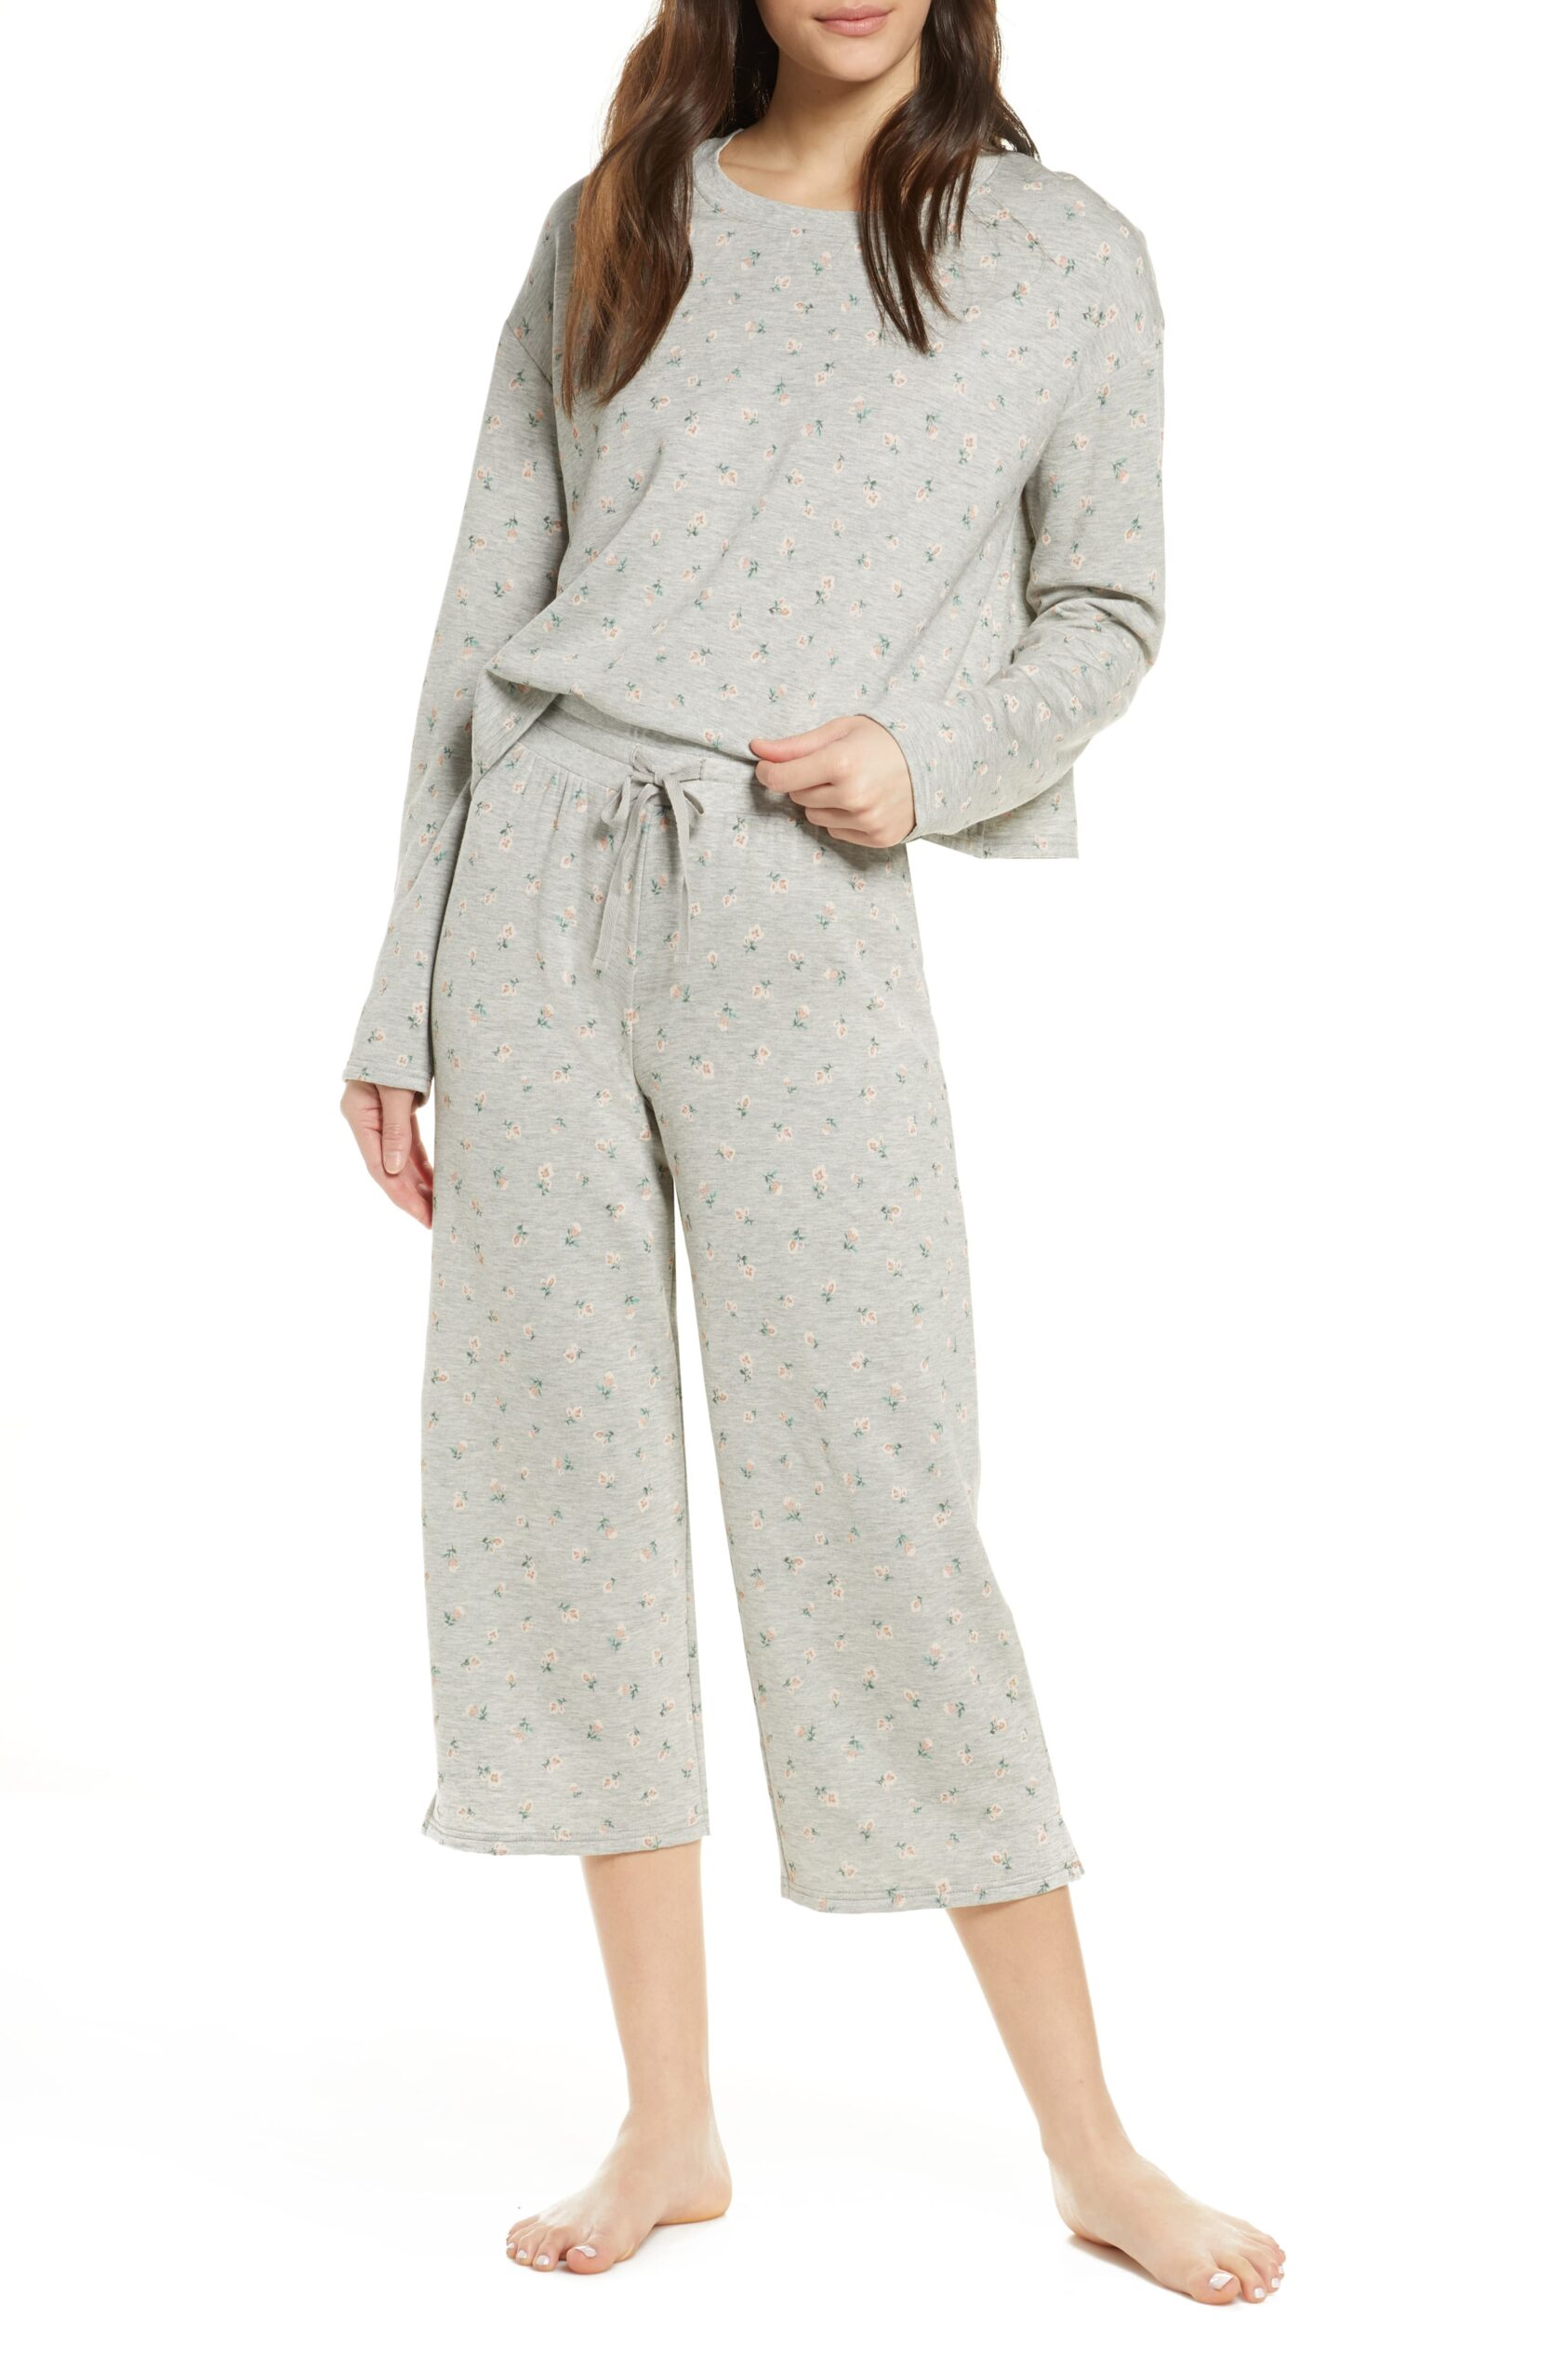 Slip into one of these adorably chic and on trend Loungewear Sets and Matching Sweatsuits, look cute as could be from the comfort of your sofa, and and stay on budget. These adorable and under $50 cozy and chic sets will get you through the season in total comfort! | glitterinc.com | @glitterinc // Bp. All Weekend Crop Sweatshirt + Bp. All Weekend Crop Pants